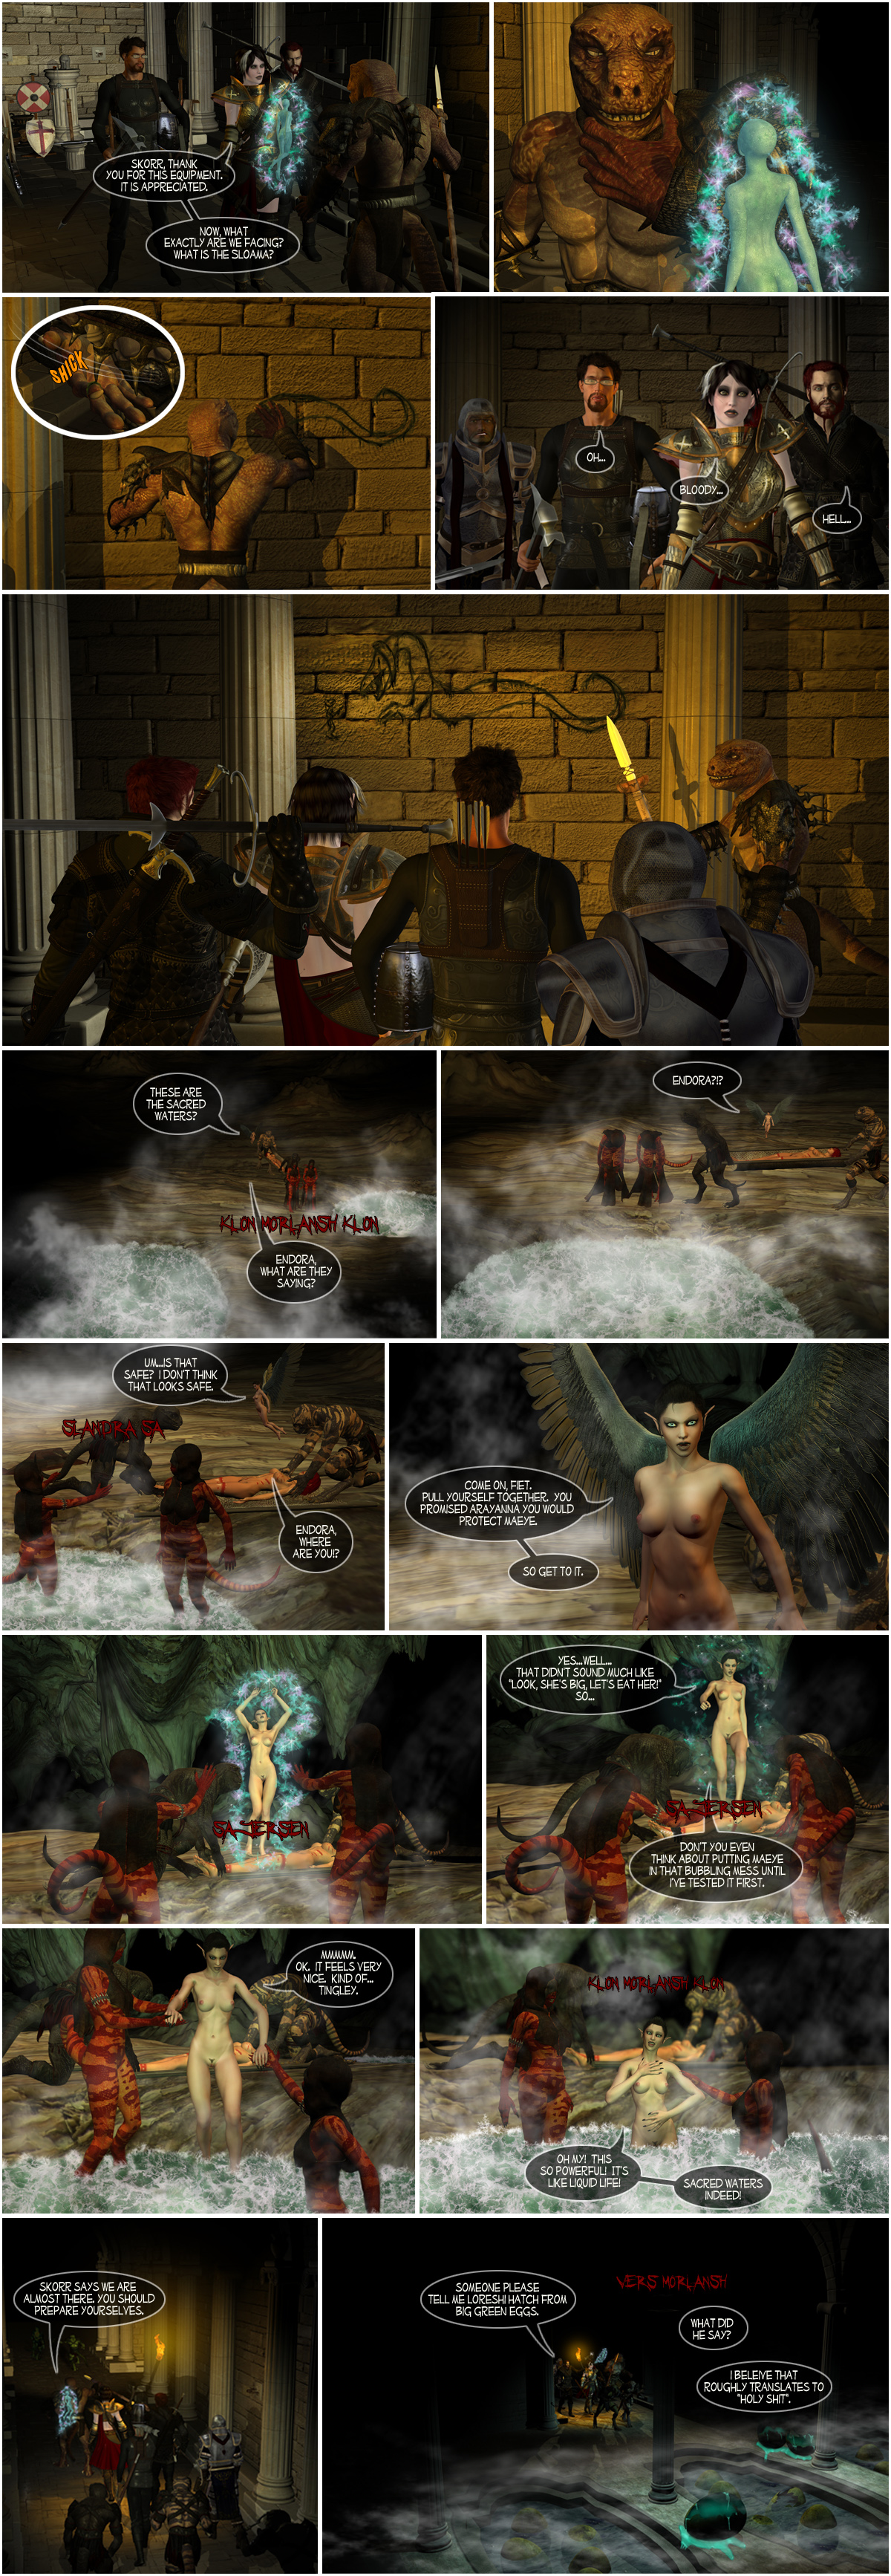 Book 1, Chapter 6, Page 3